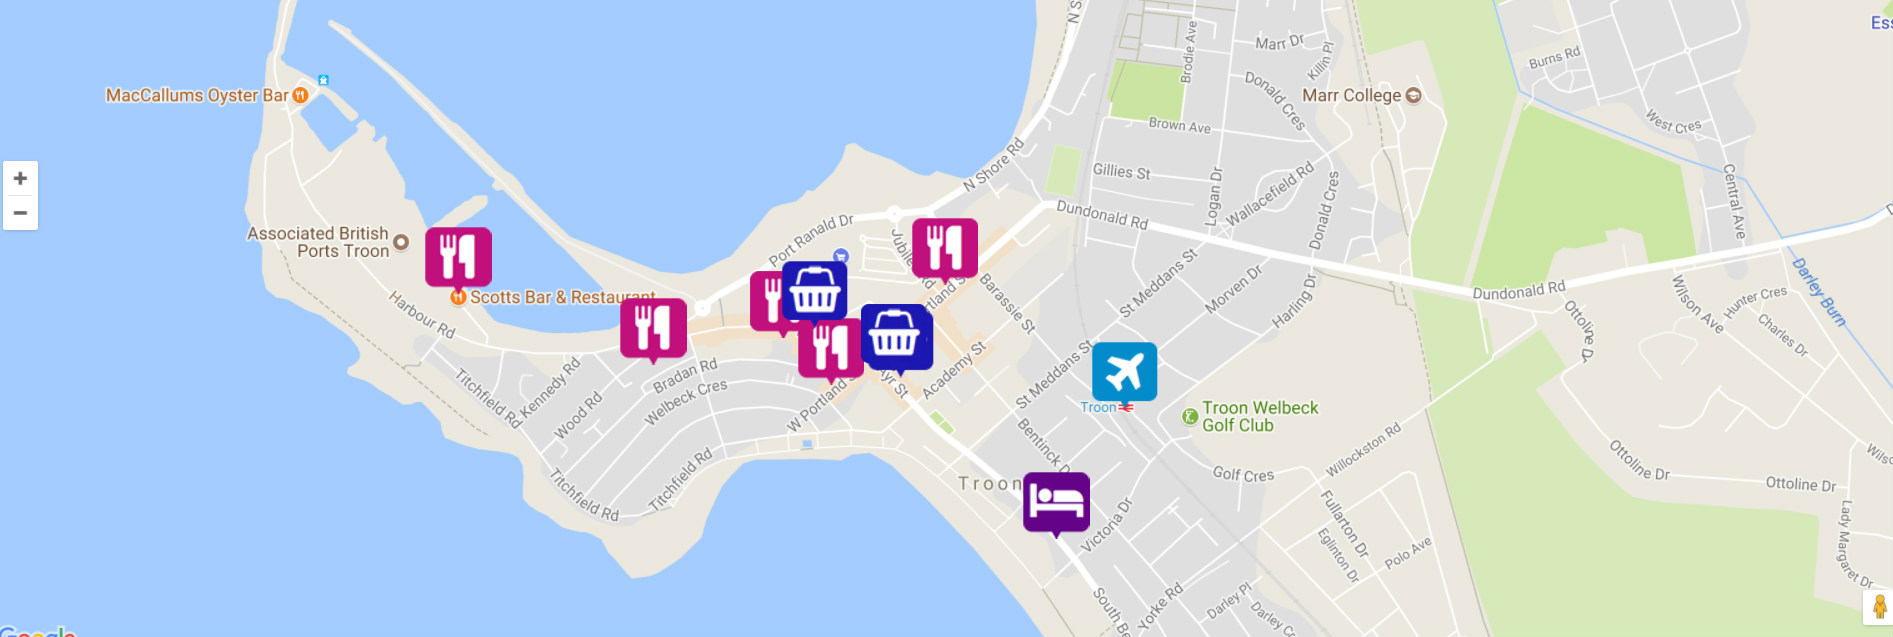 Troon Scotland Map.Free Business Listing For Winterstorm Website Hotels Cafes